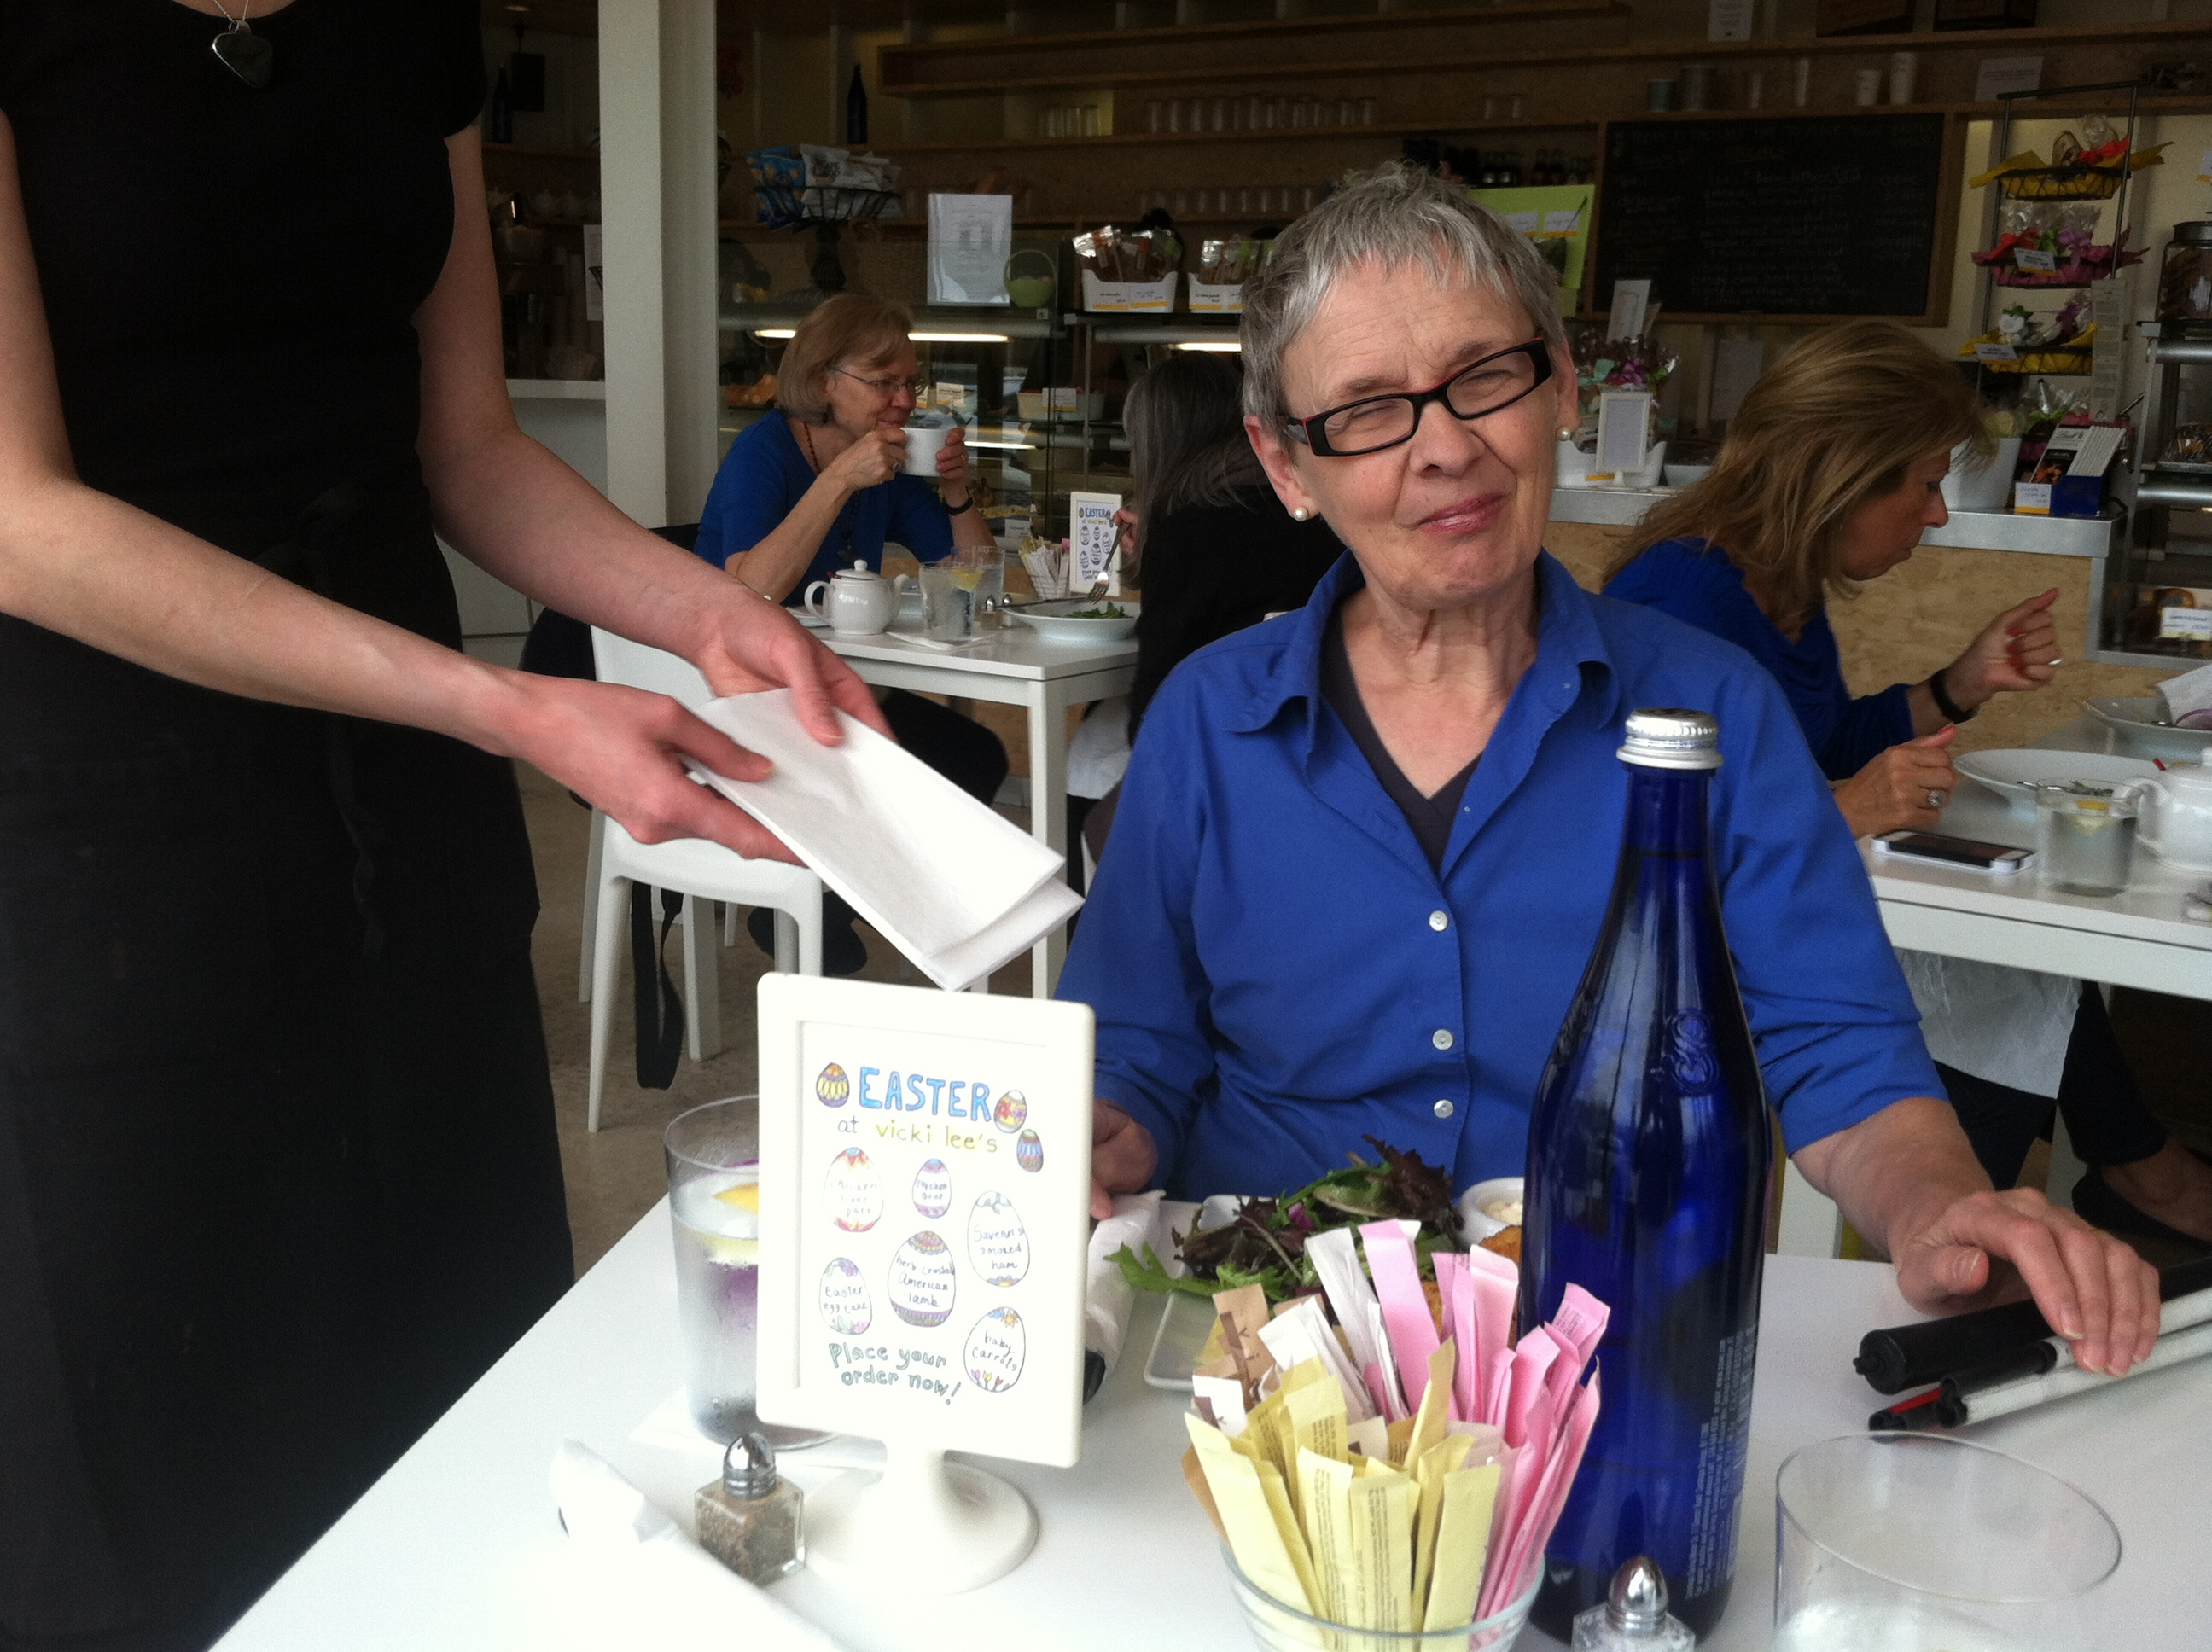 A waitress is holding out a napkin to a woman who seems unaware of it. There is a folded white cane on the edge of the table.